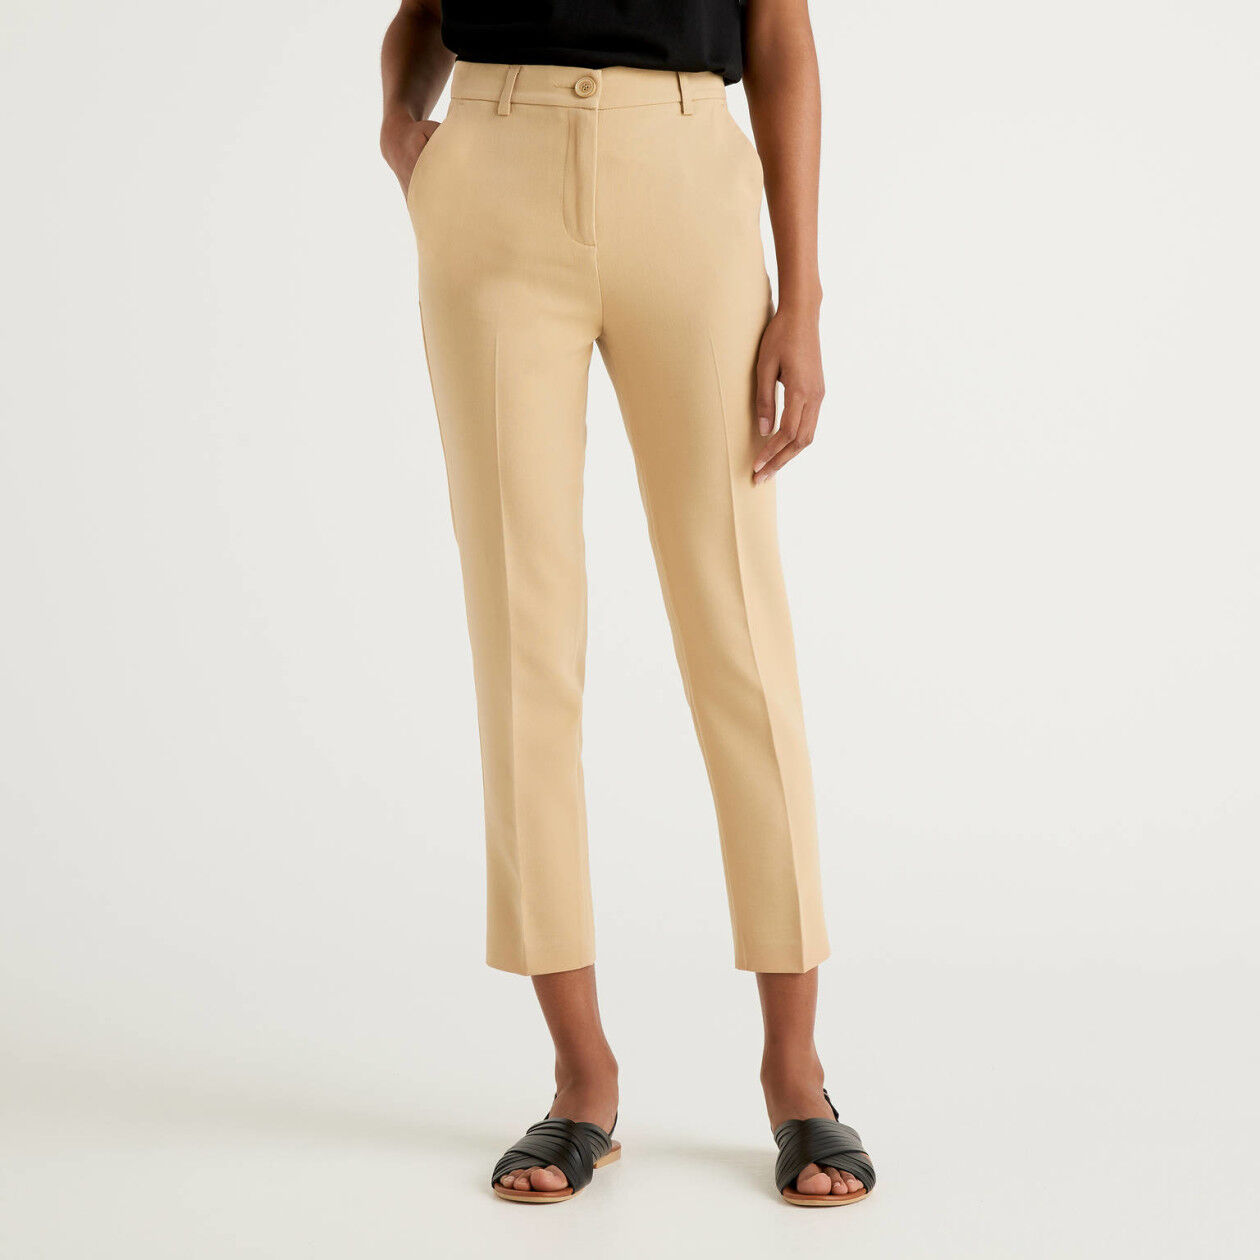 Basic trousers with centered crease